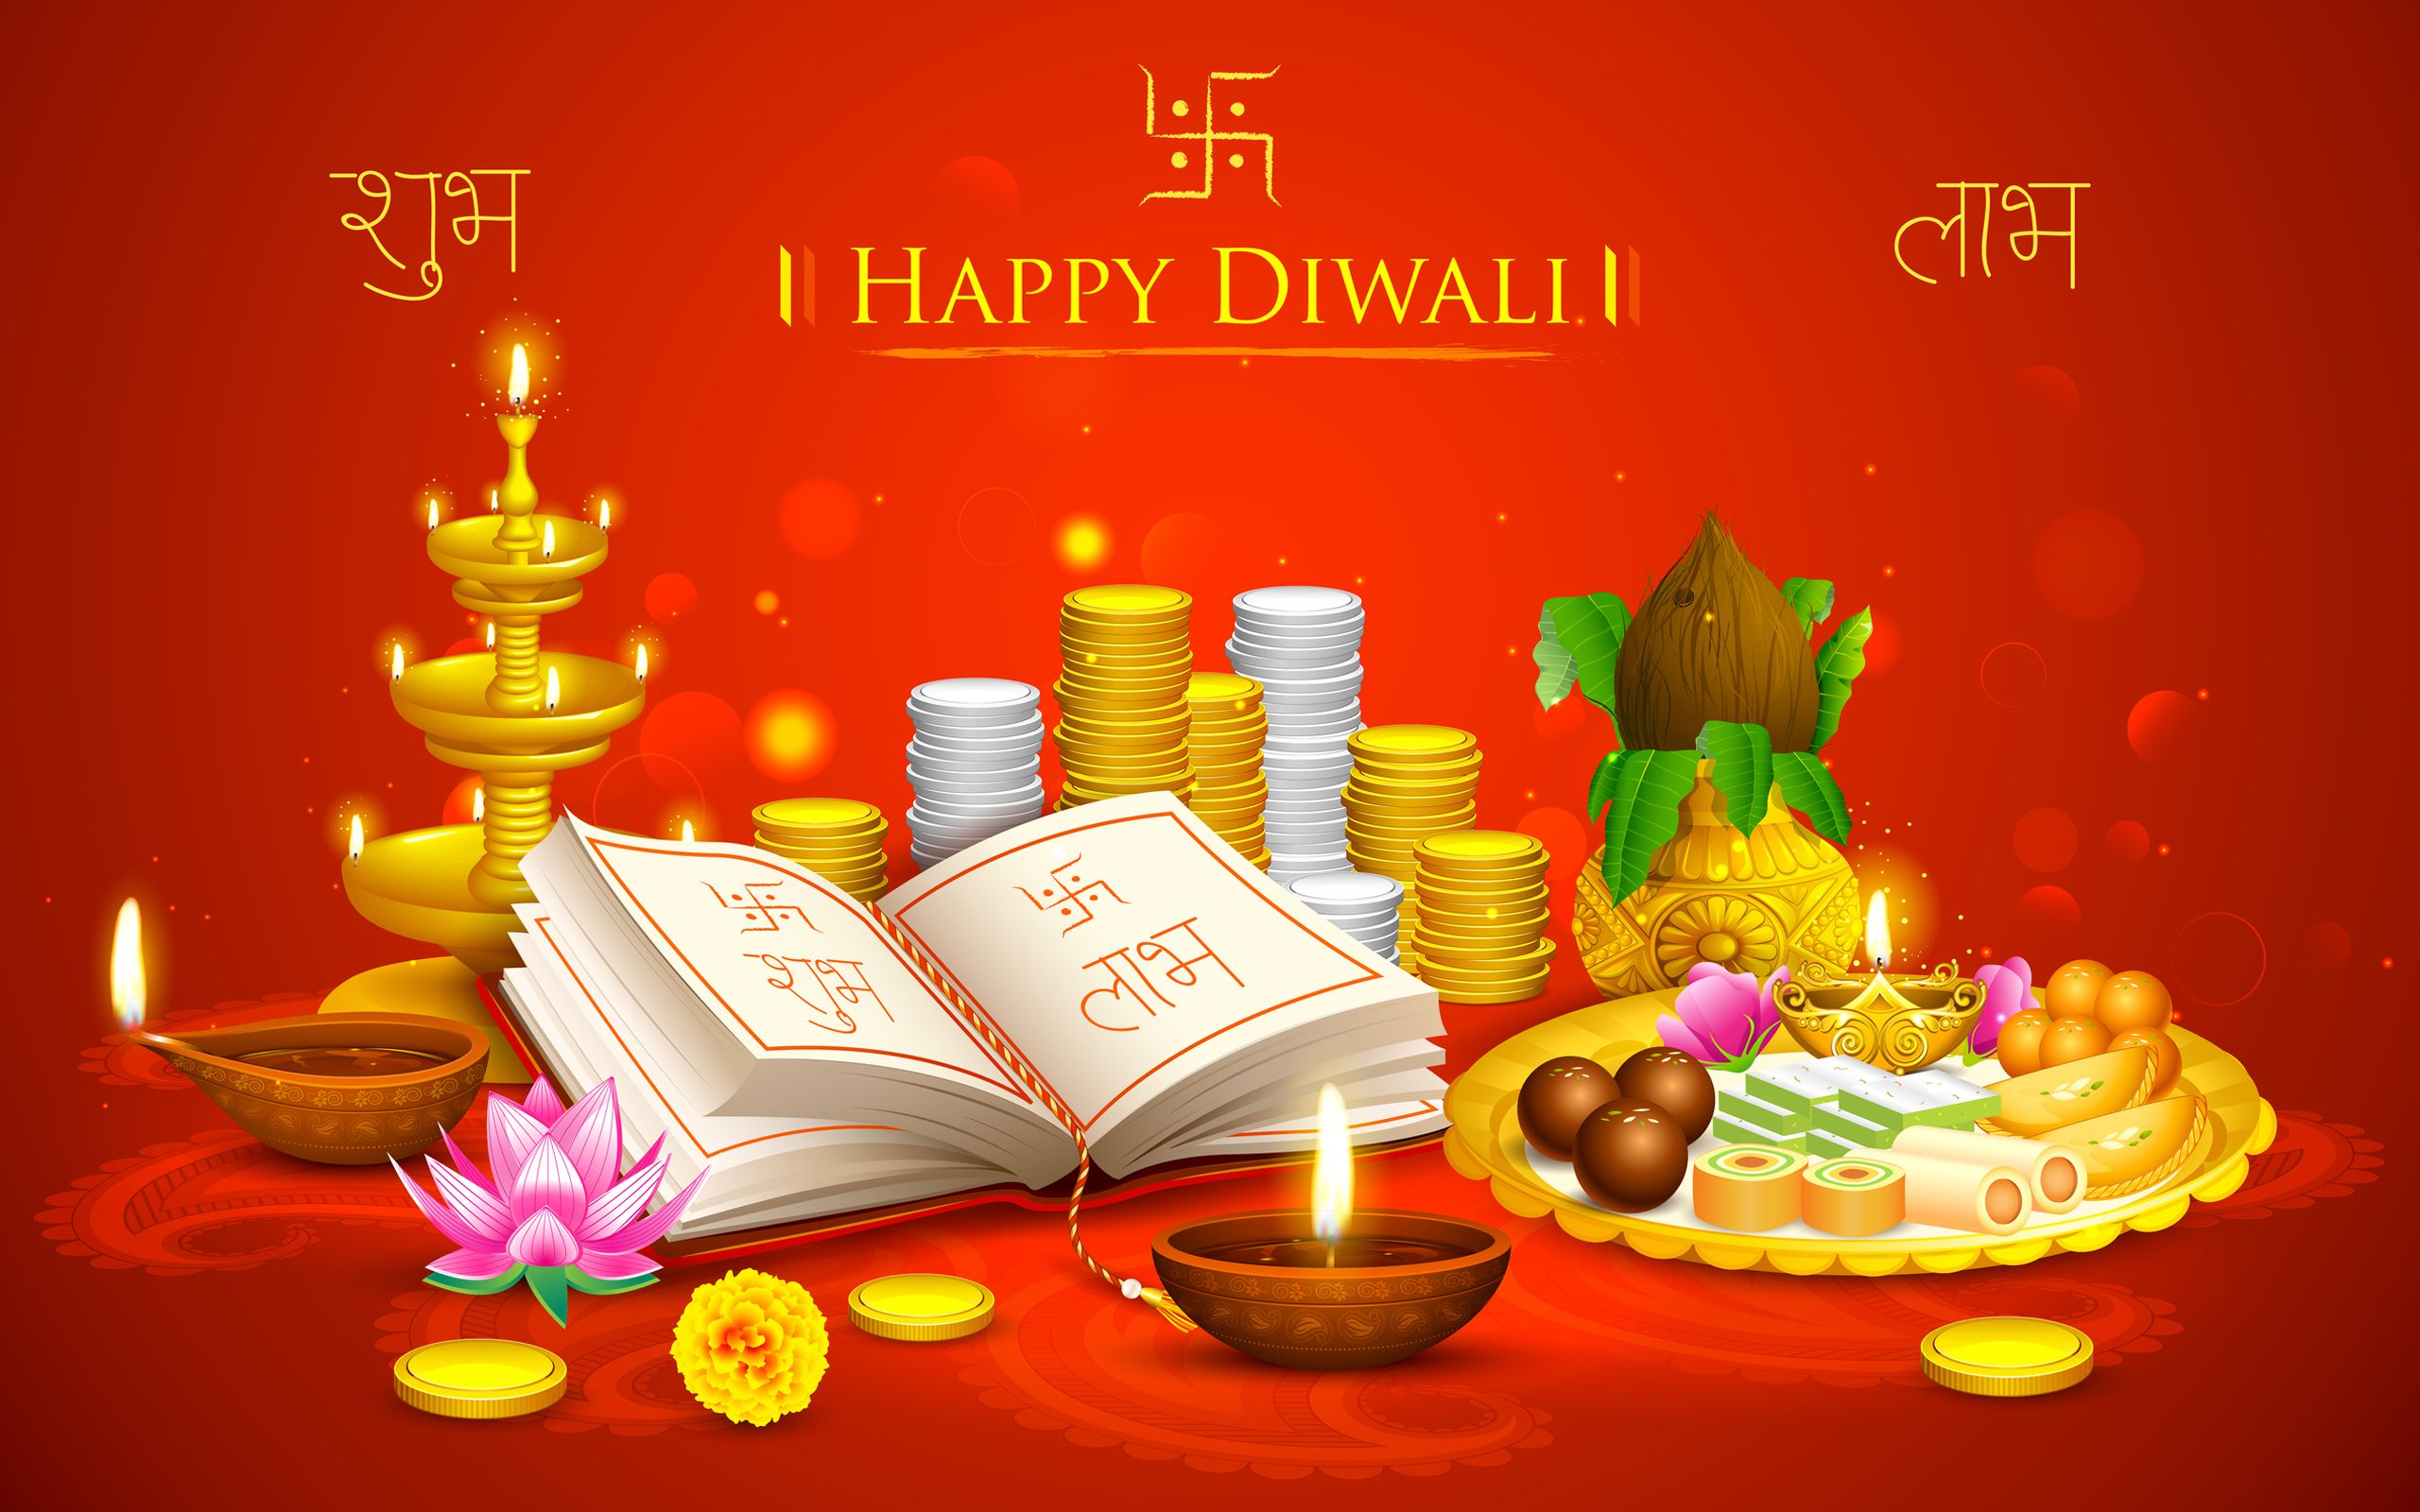 Happy Diwali And Dhanteras Wallpapers: Happy Diwali Hd Wallpaper Happy Diwali, HD, Wallpaper